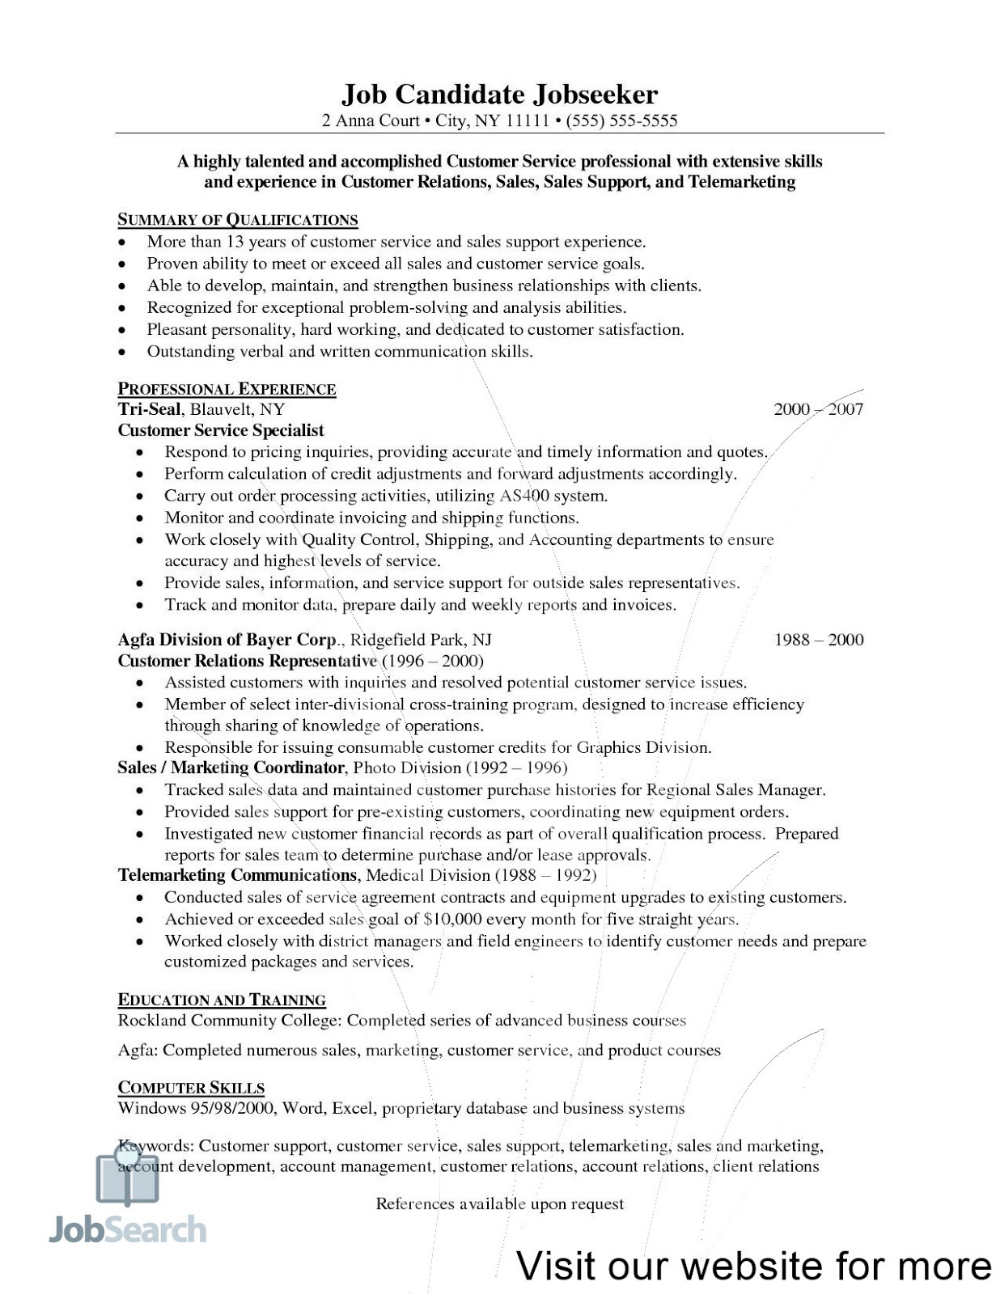 great customer service resume examples 2020 in format for hotel chef call center objective best free professional cv template word